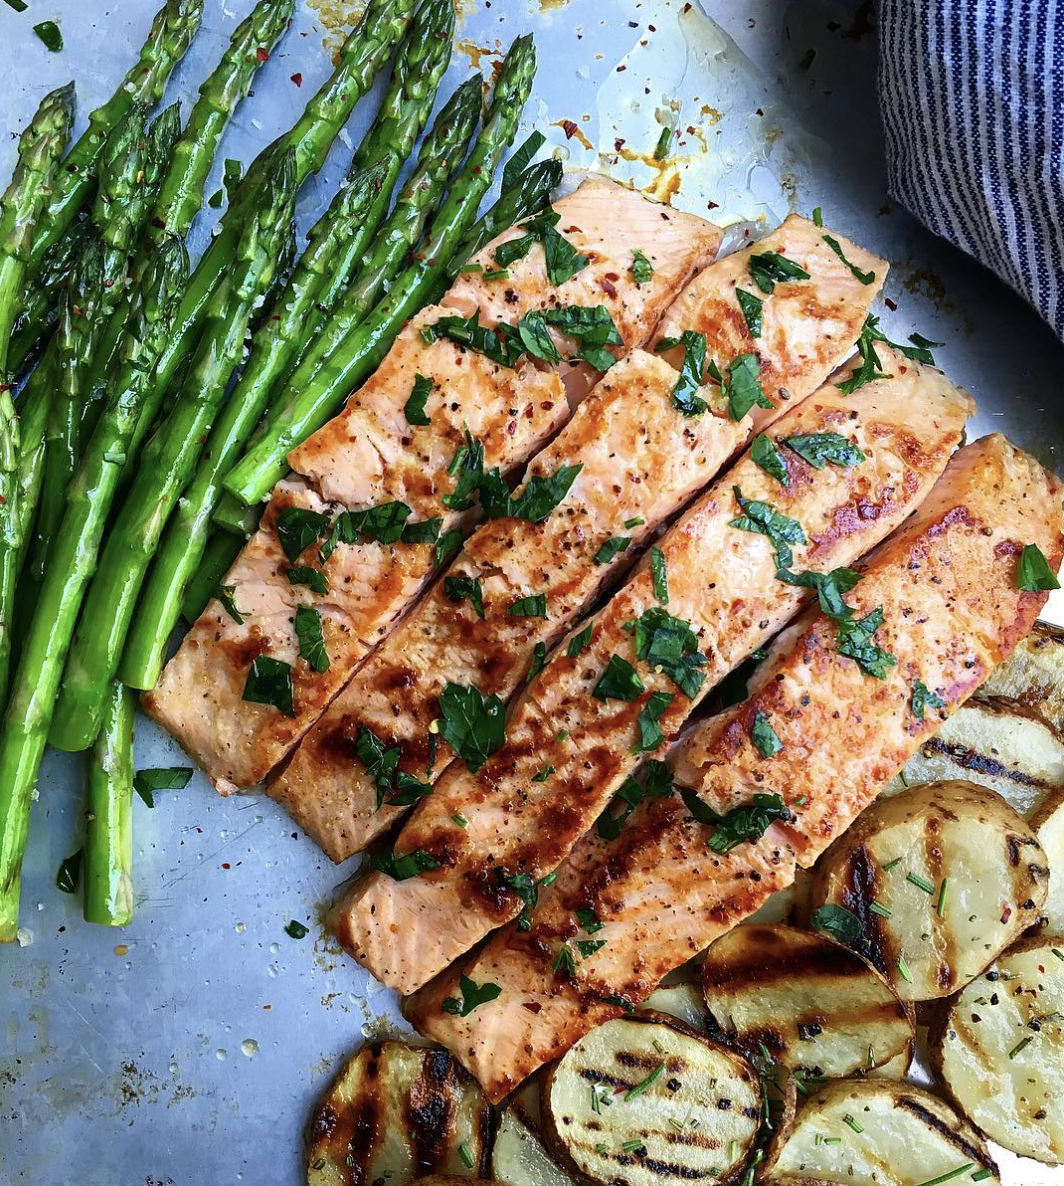 Seared Salmon with Grilled Asparagus and Potatoes